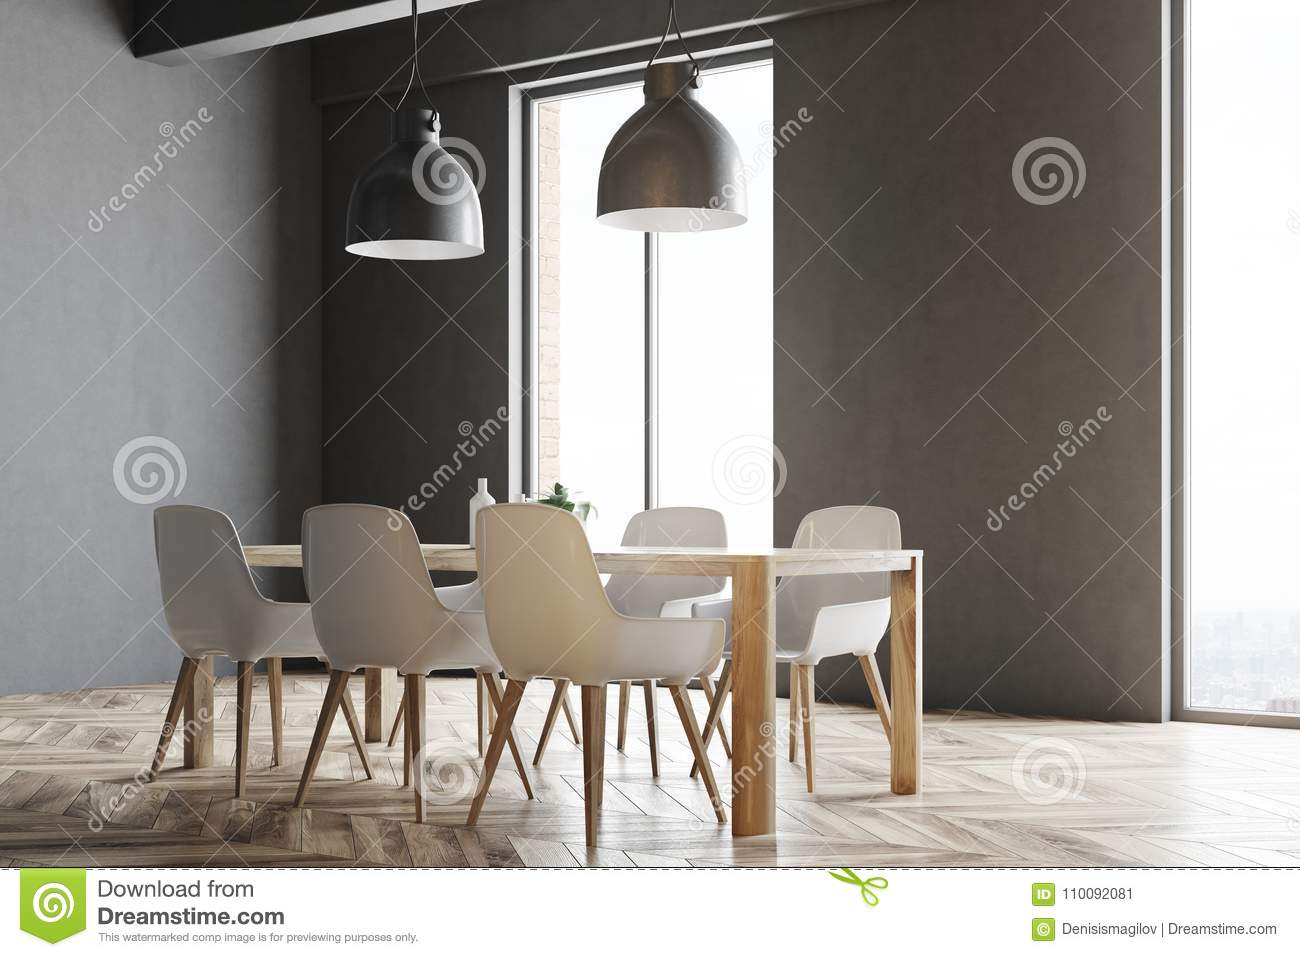 Miraculous Wooden Table With White Chairs Windows Stock Illustration Inzonedesignstudio Interior Chair Design Inzonedesignstudiocom